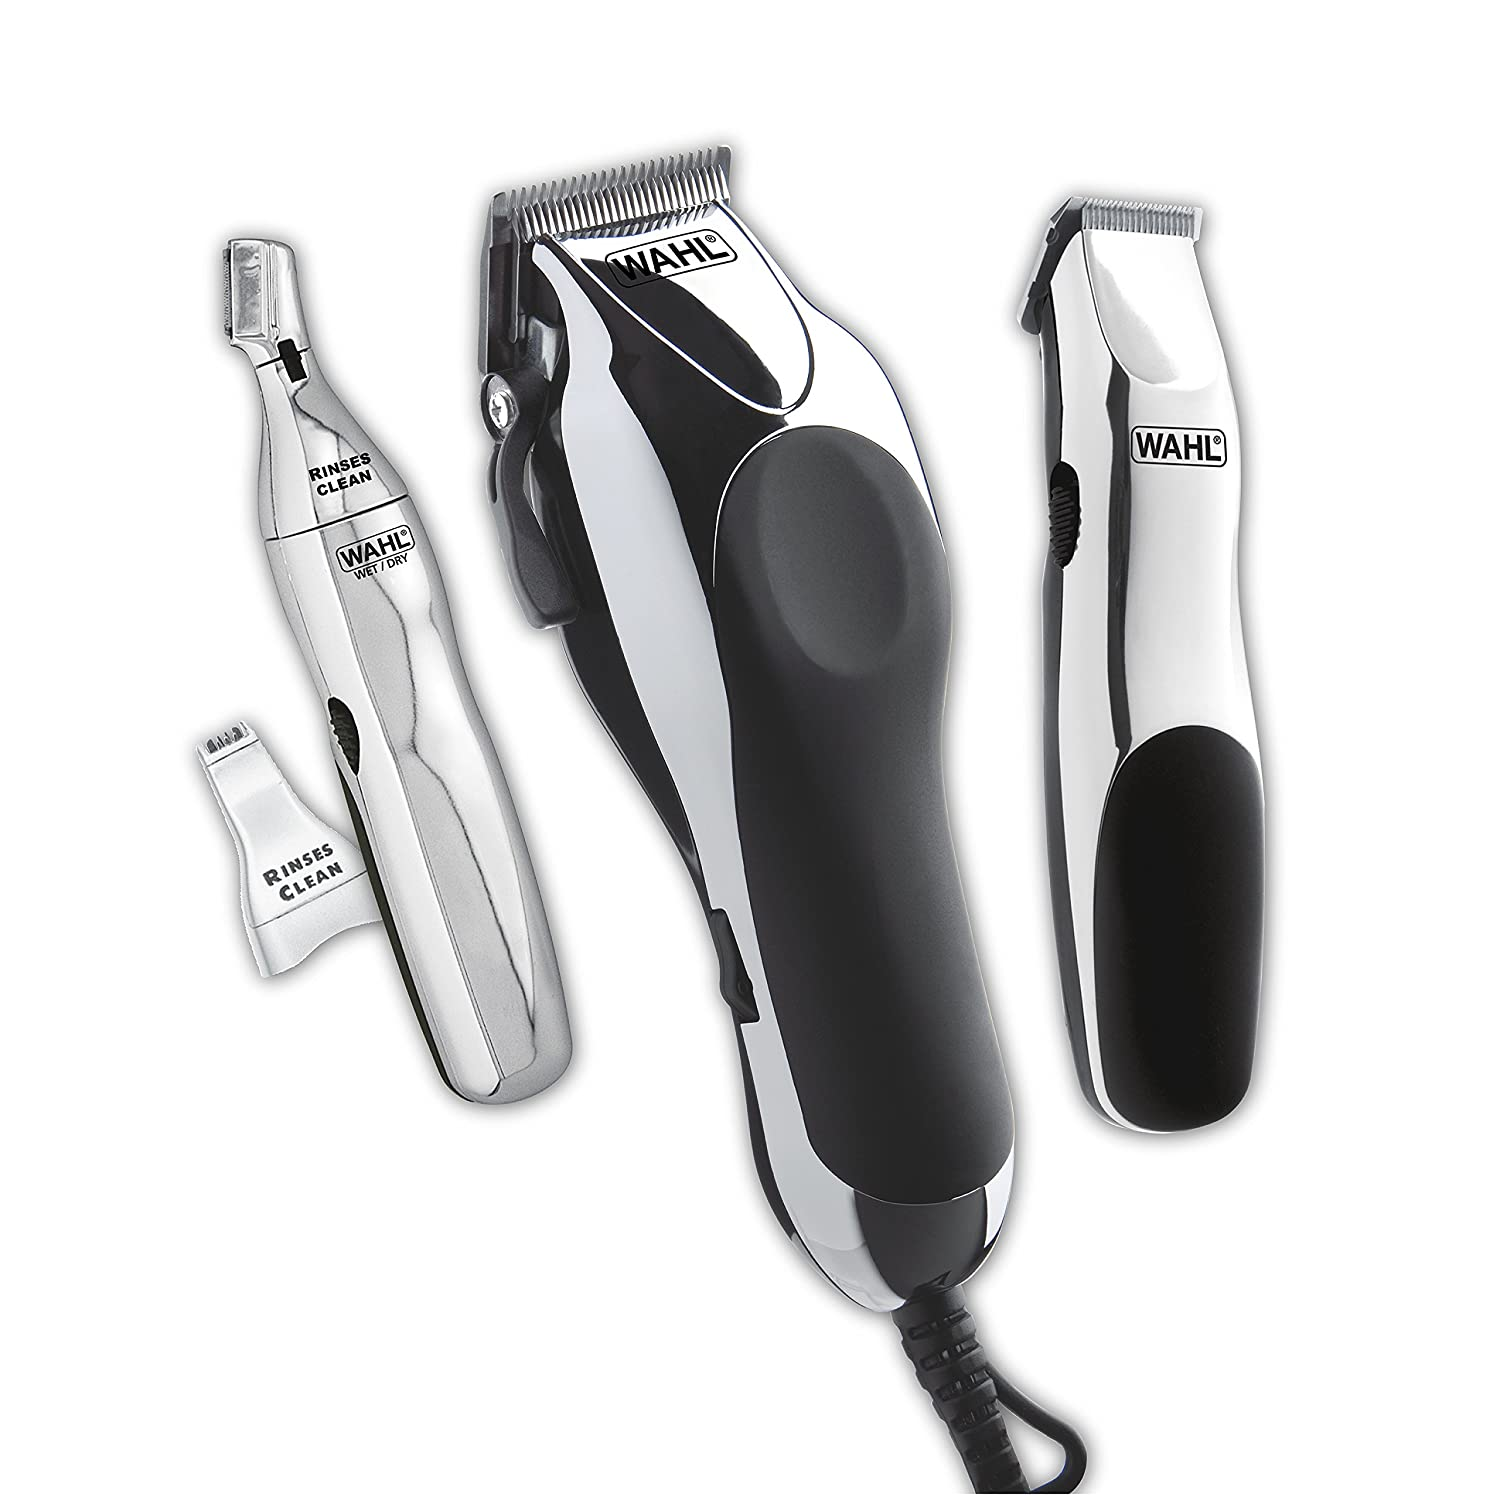 Wahl Clipper Home Barber Kit with Electric Clipper, Touch Up Trimmer Personal Groomer 30 Piece Kit for Professional Style Haircutting at Home Model 79524-3001